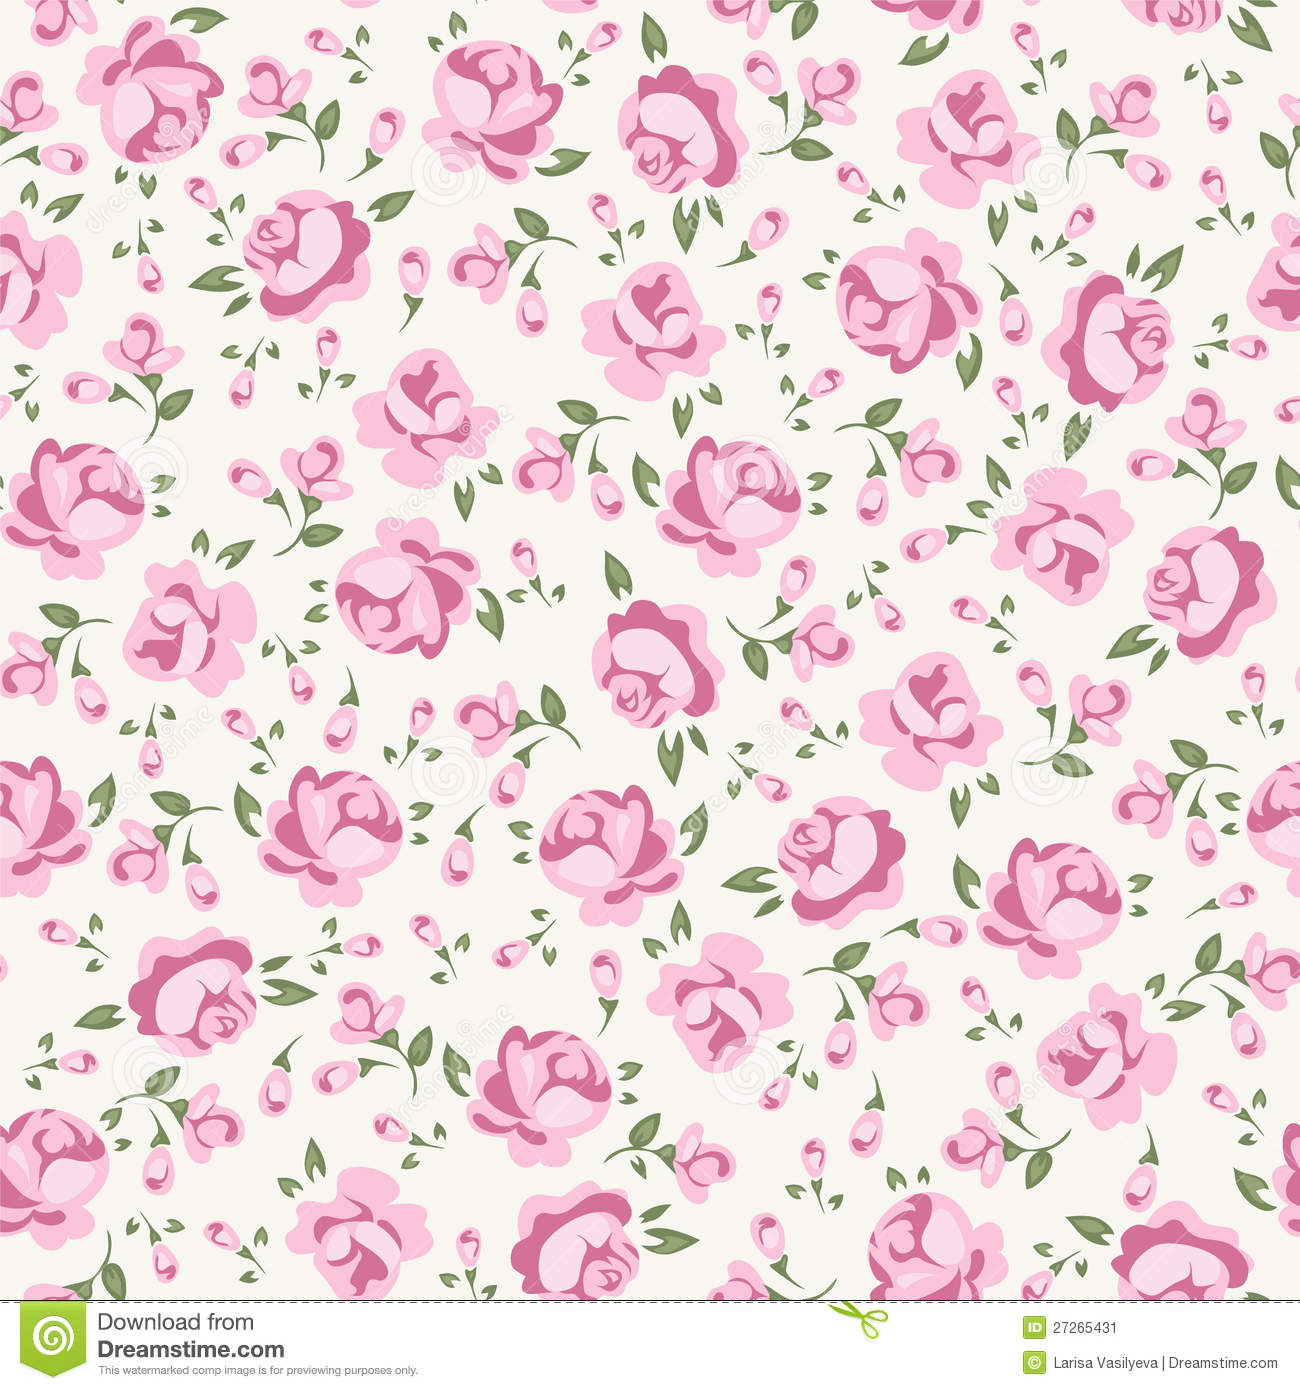 Shabby Chic Rose Pattern Scrap Booking Floral Seamless Background